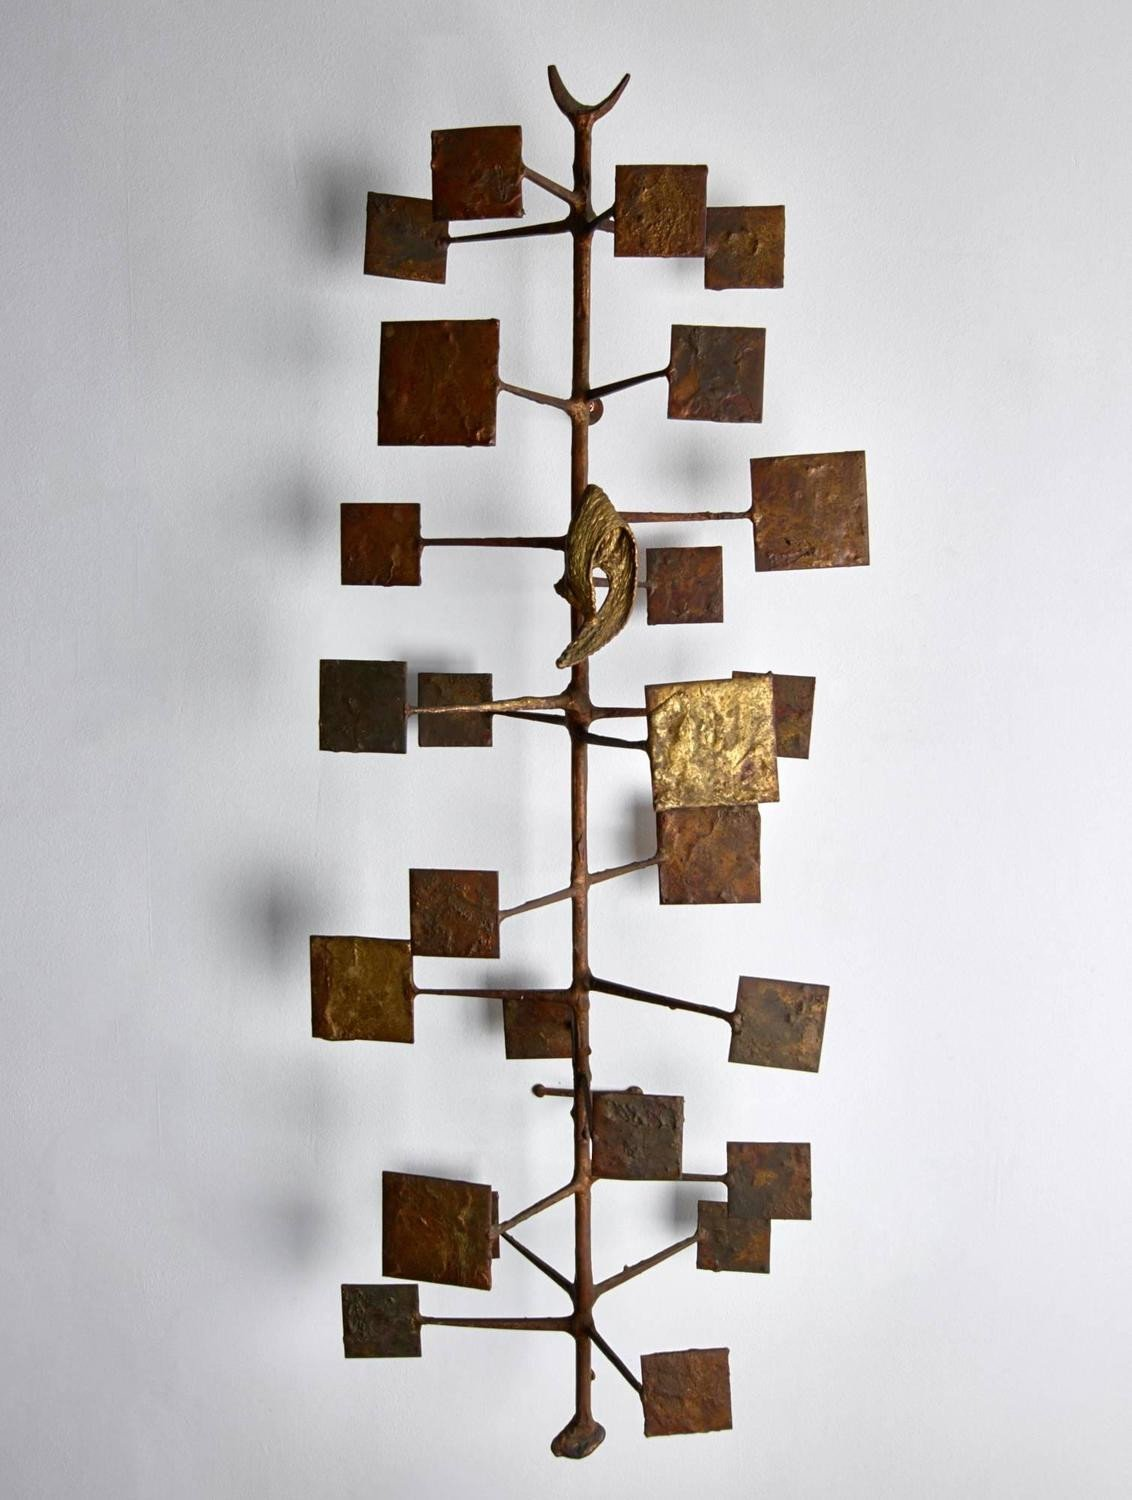 Harry Bertoia Untitled Multi Plane circa 1950s